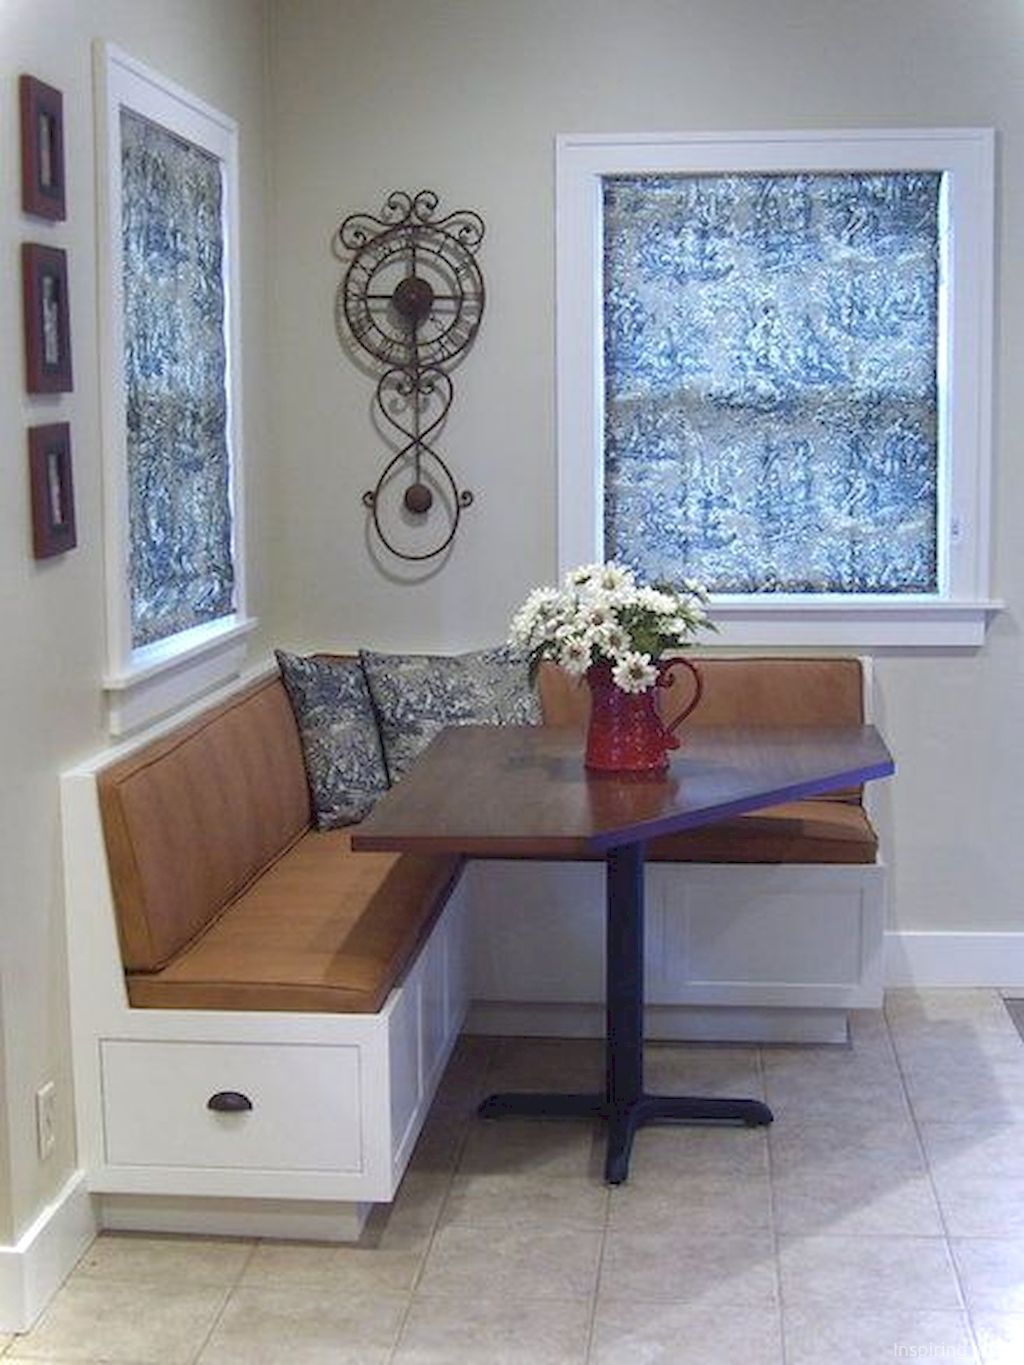 70 Nice Banquette Sitting Ideas For Kitchen Corner Bench Dining Table Kitchen Corner Bench Kitchen Table Bench